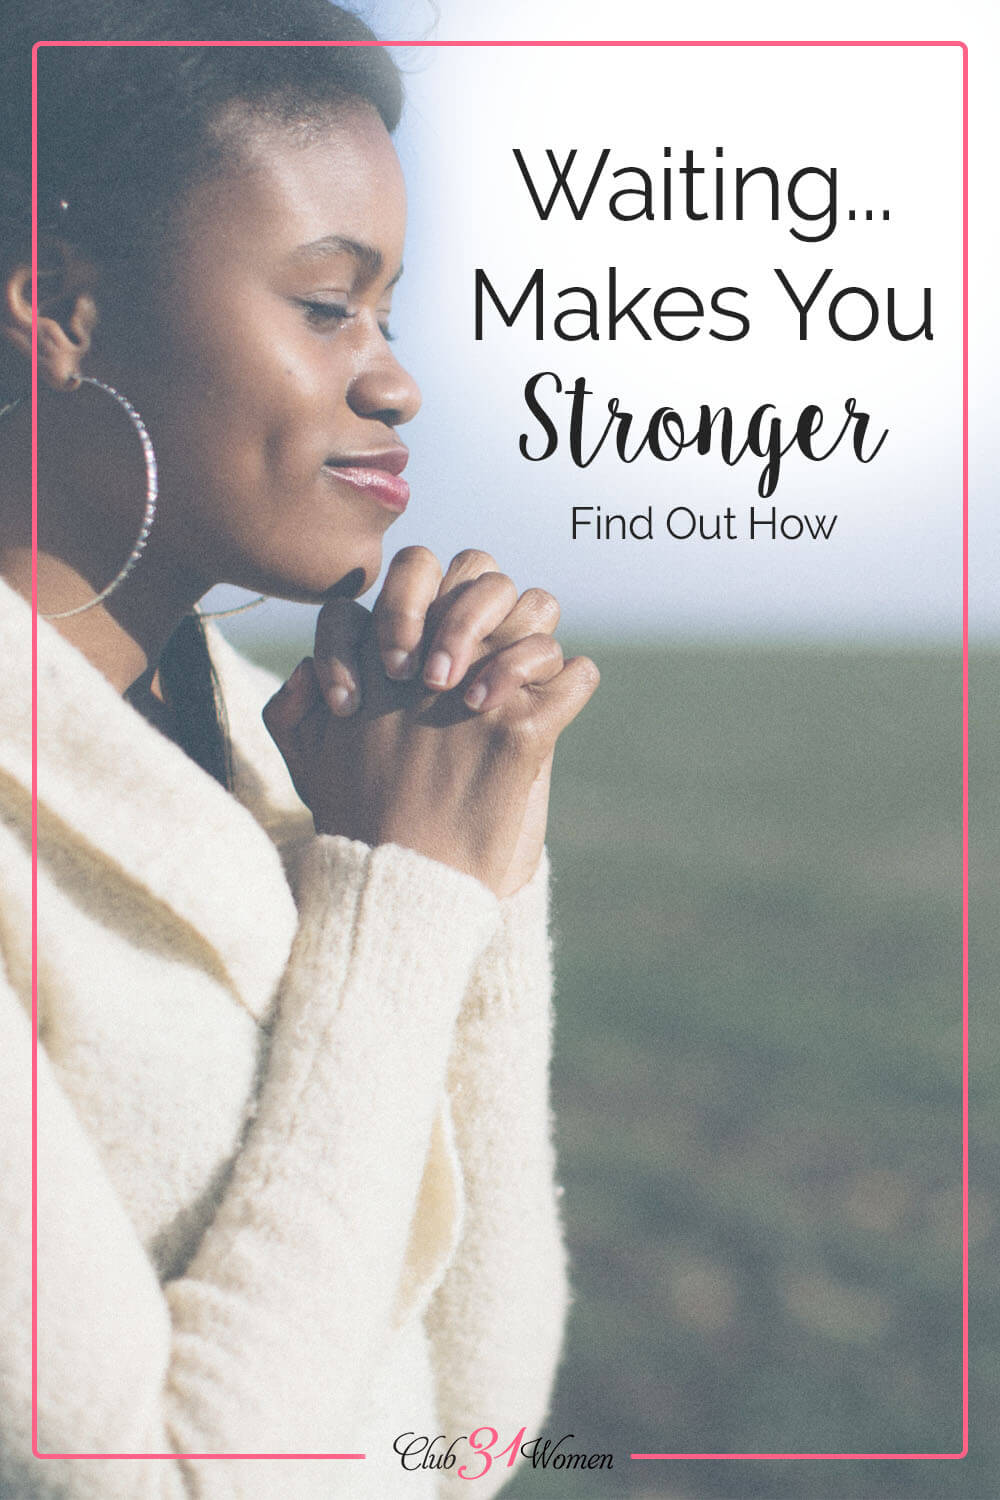 Waiting is tough and rarely comfortable. But it is in the waiting that we find God's strength in us. It is in the waiting God moves. via @Club31Women